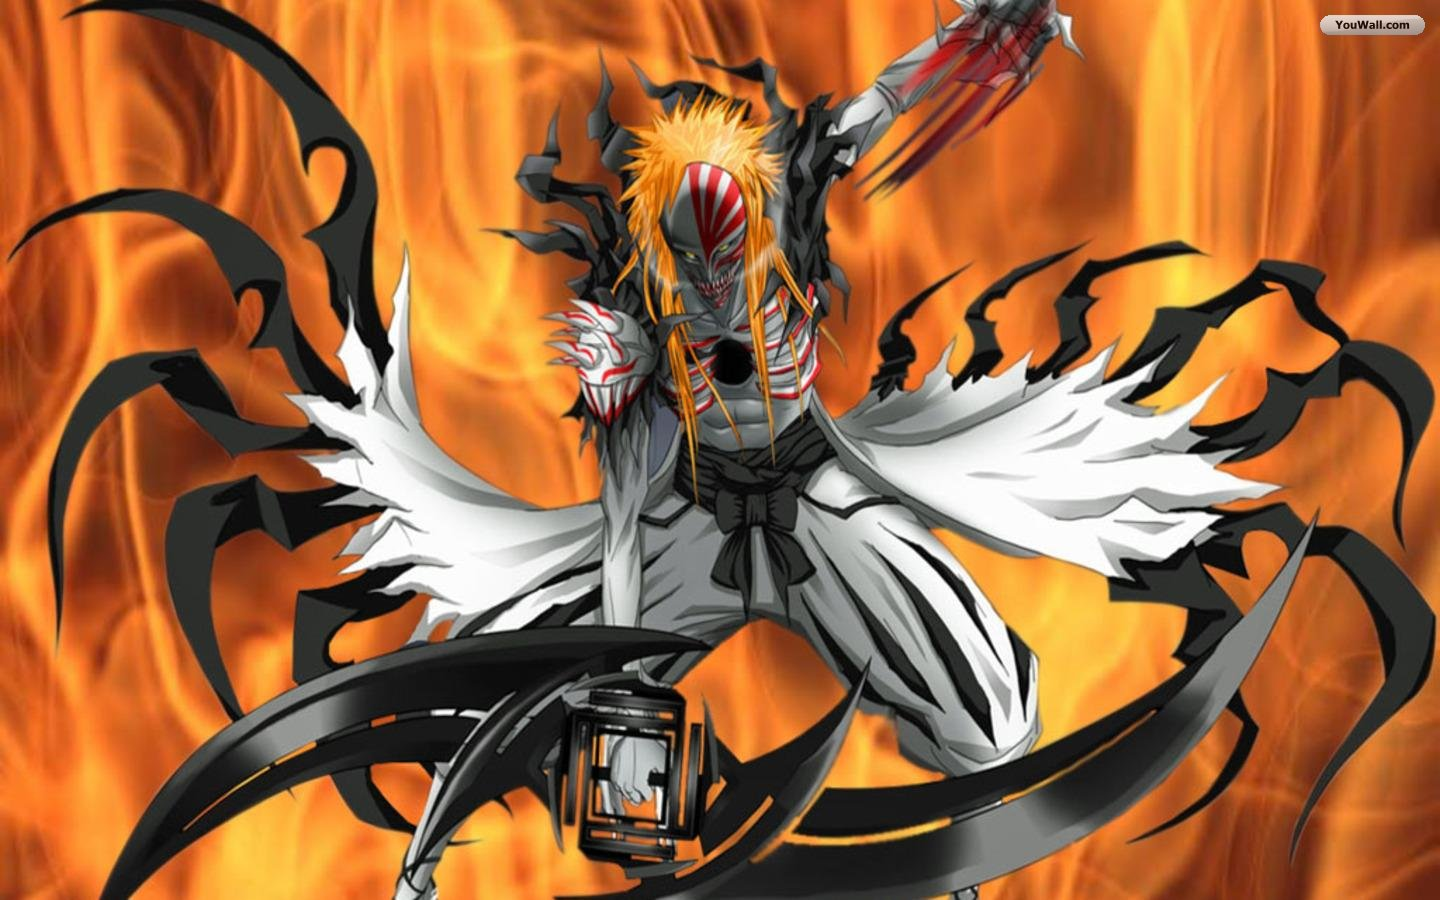 Jkt Craziness: I'll find you even in Hell!! - Bleach 4th ...